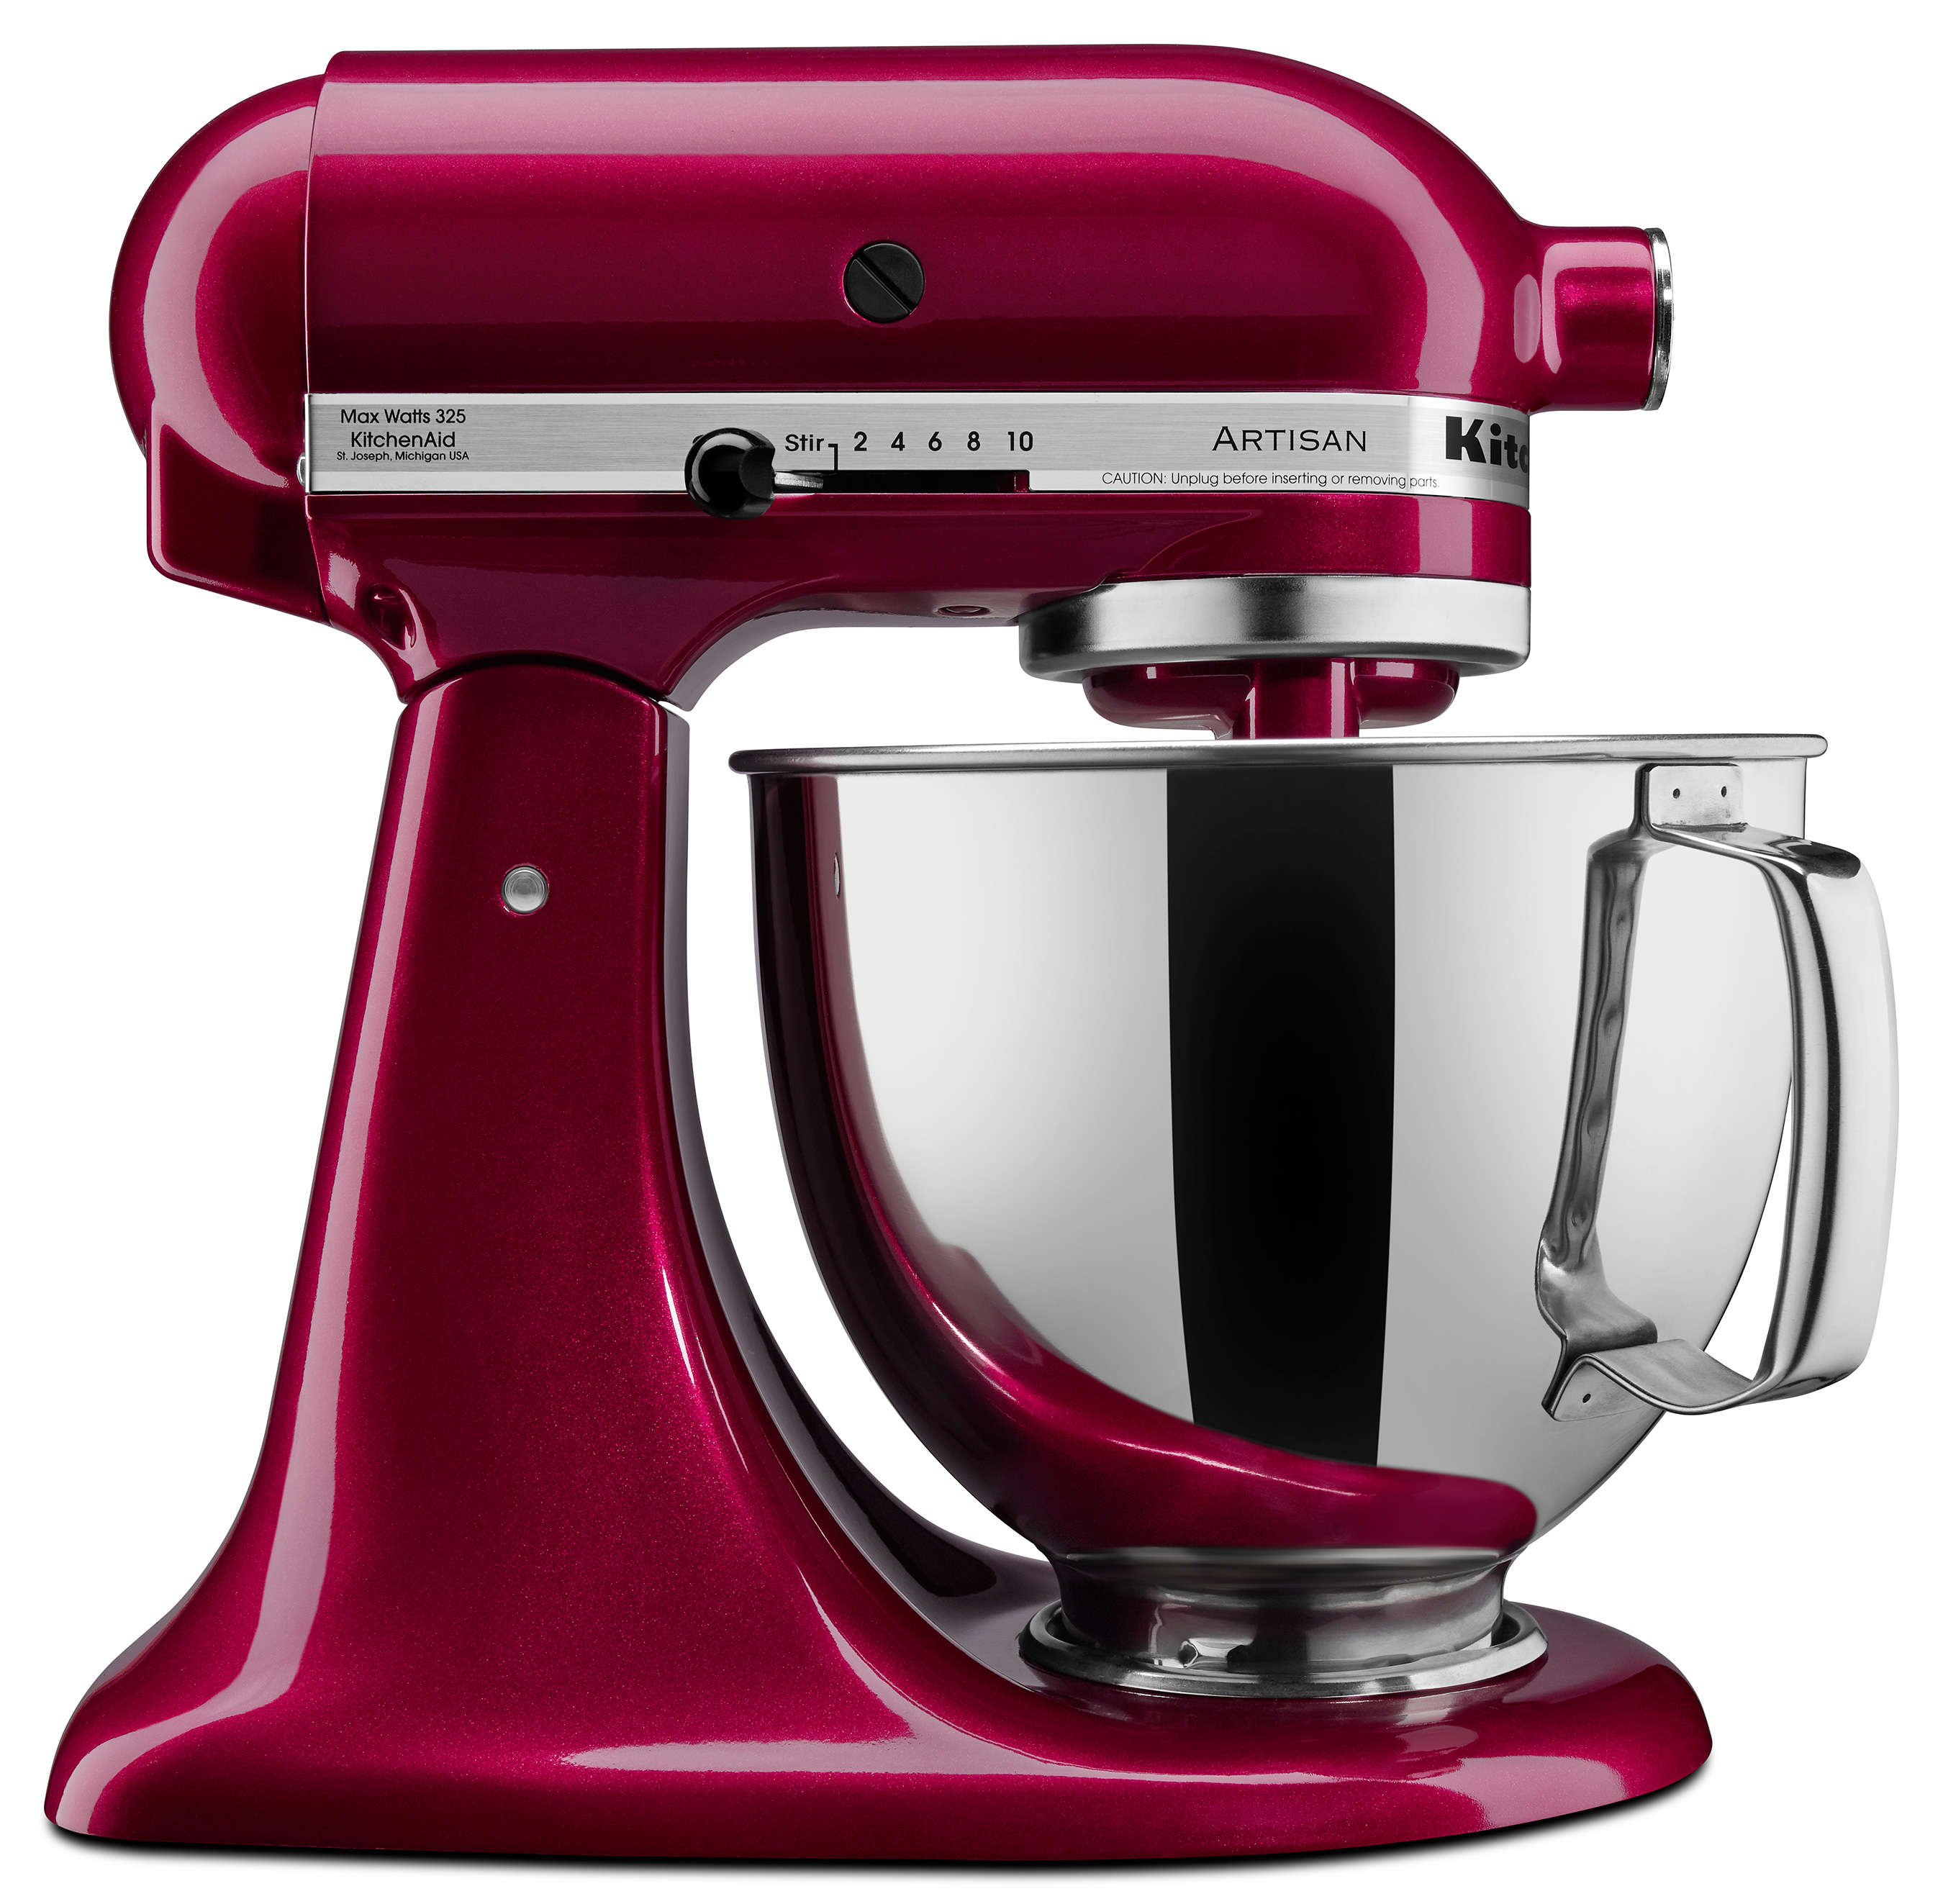 stand mixer gifts from kitchenaid. Black Bedroom Furniture Sets. Home Design Ideas